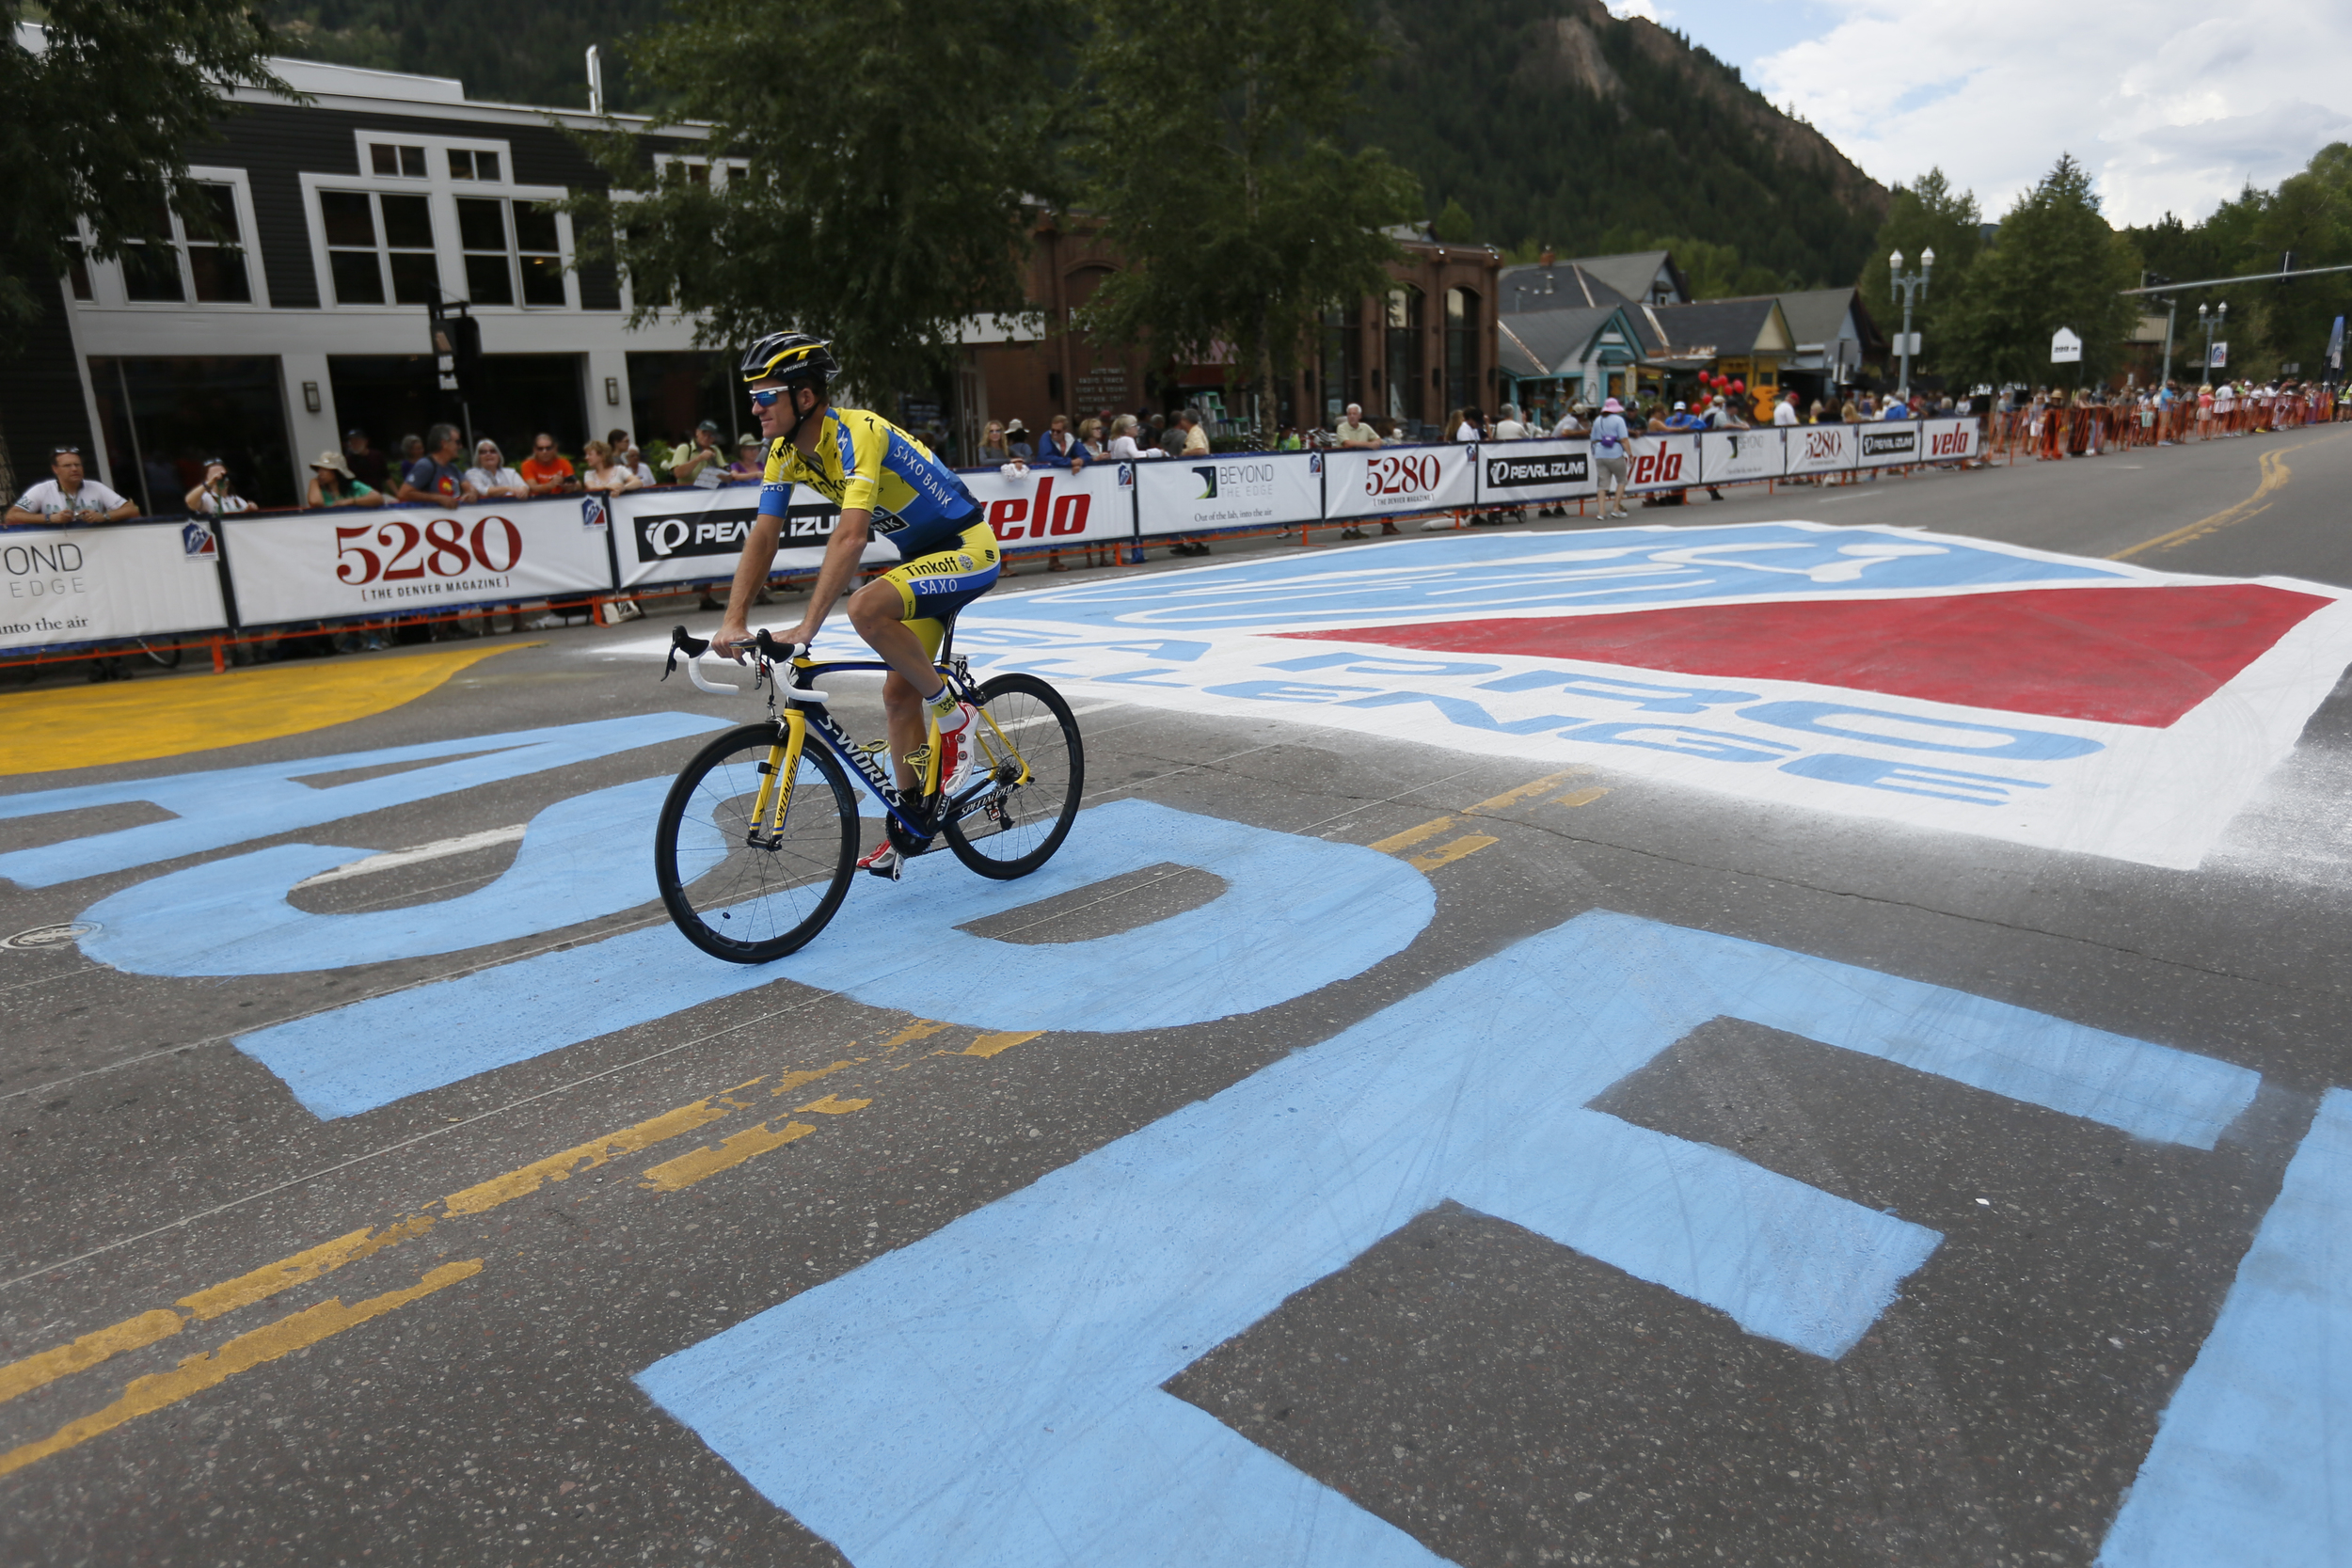 Recent Tour de France stage winner, Mick Rogers graced the streets of Aspen.